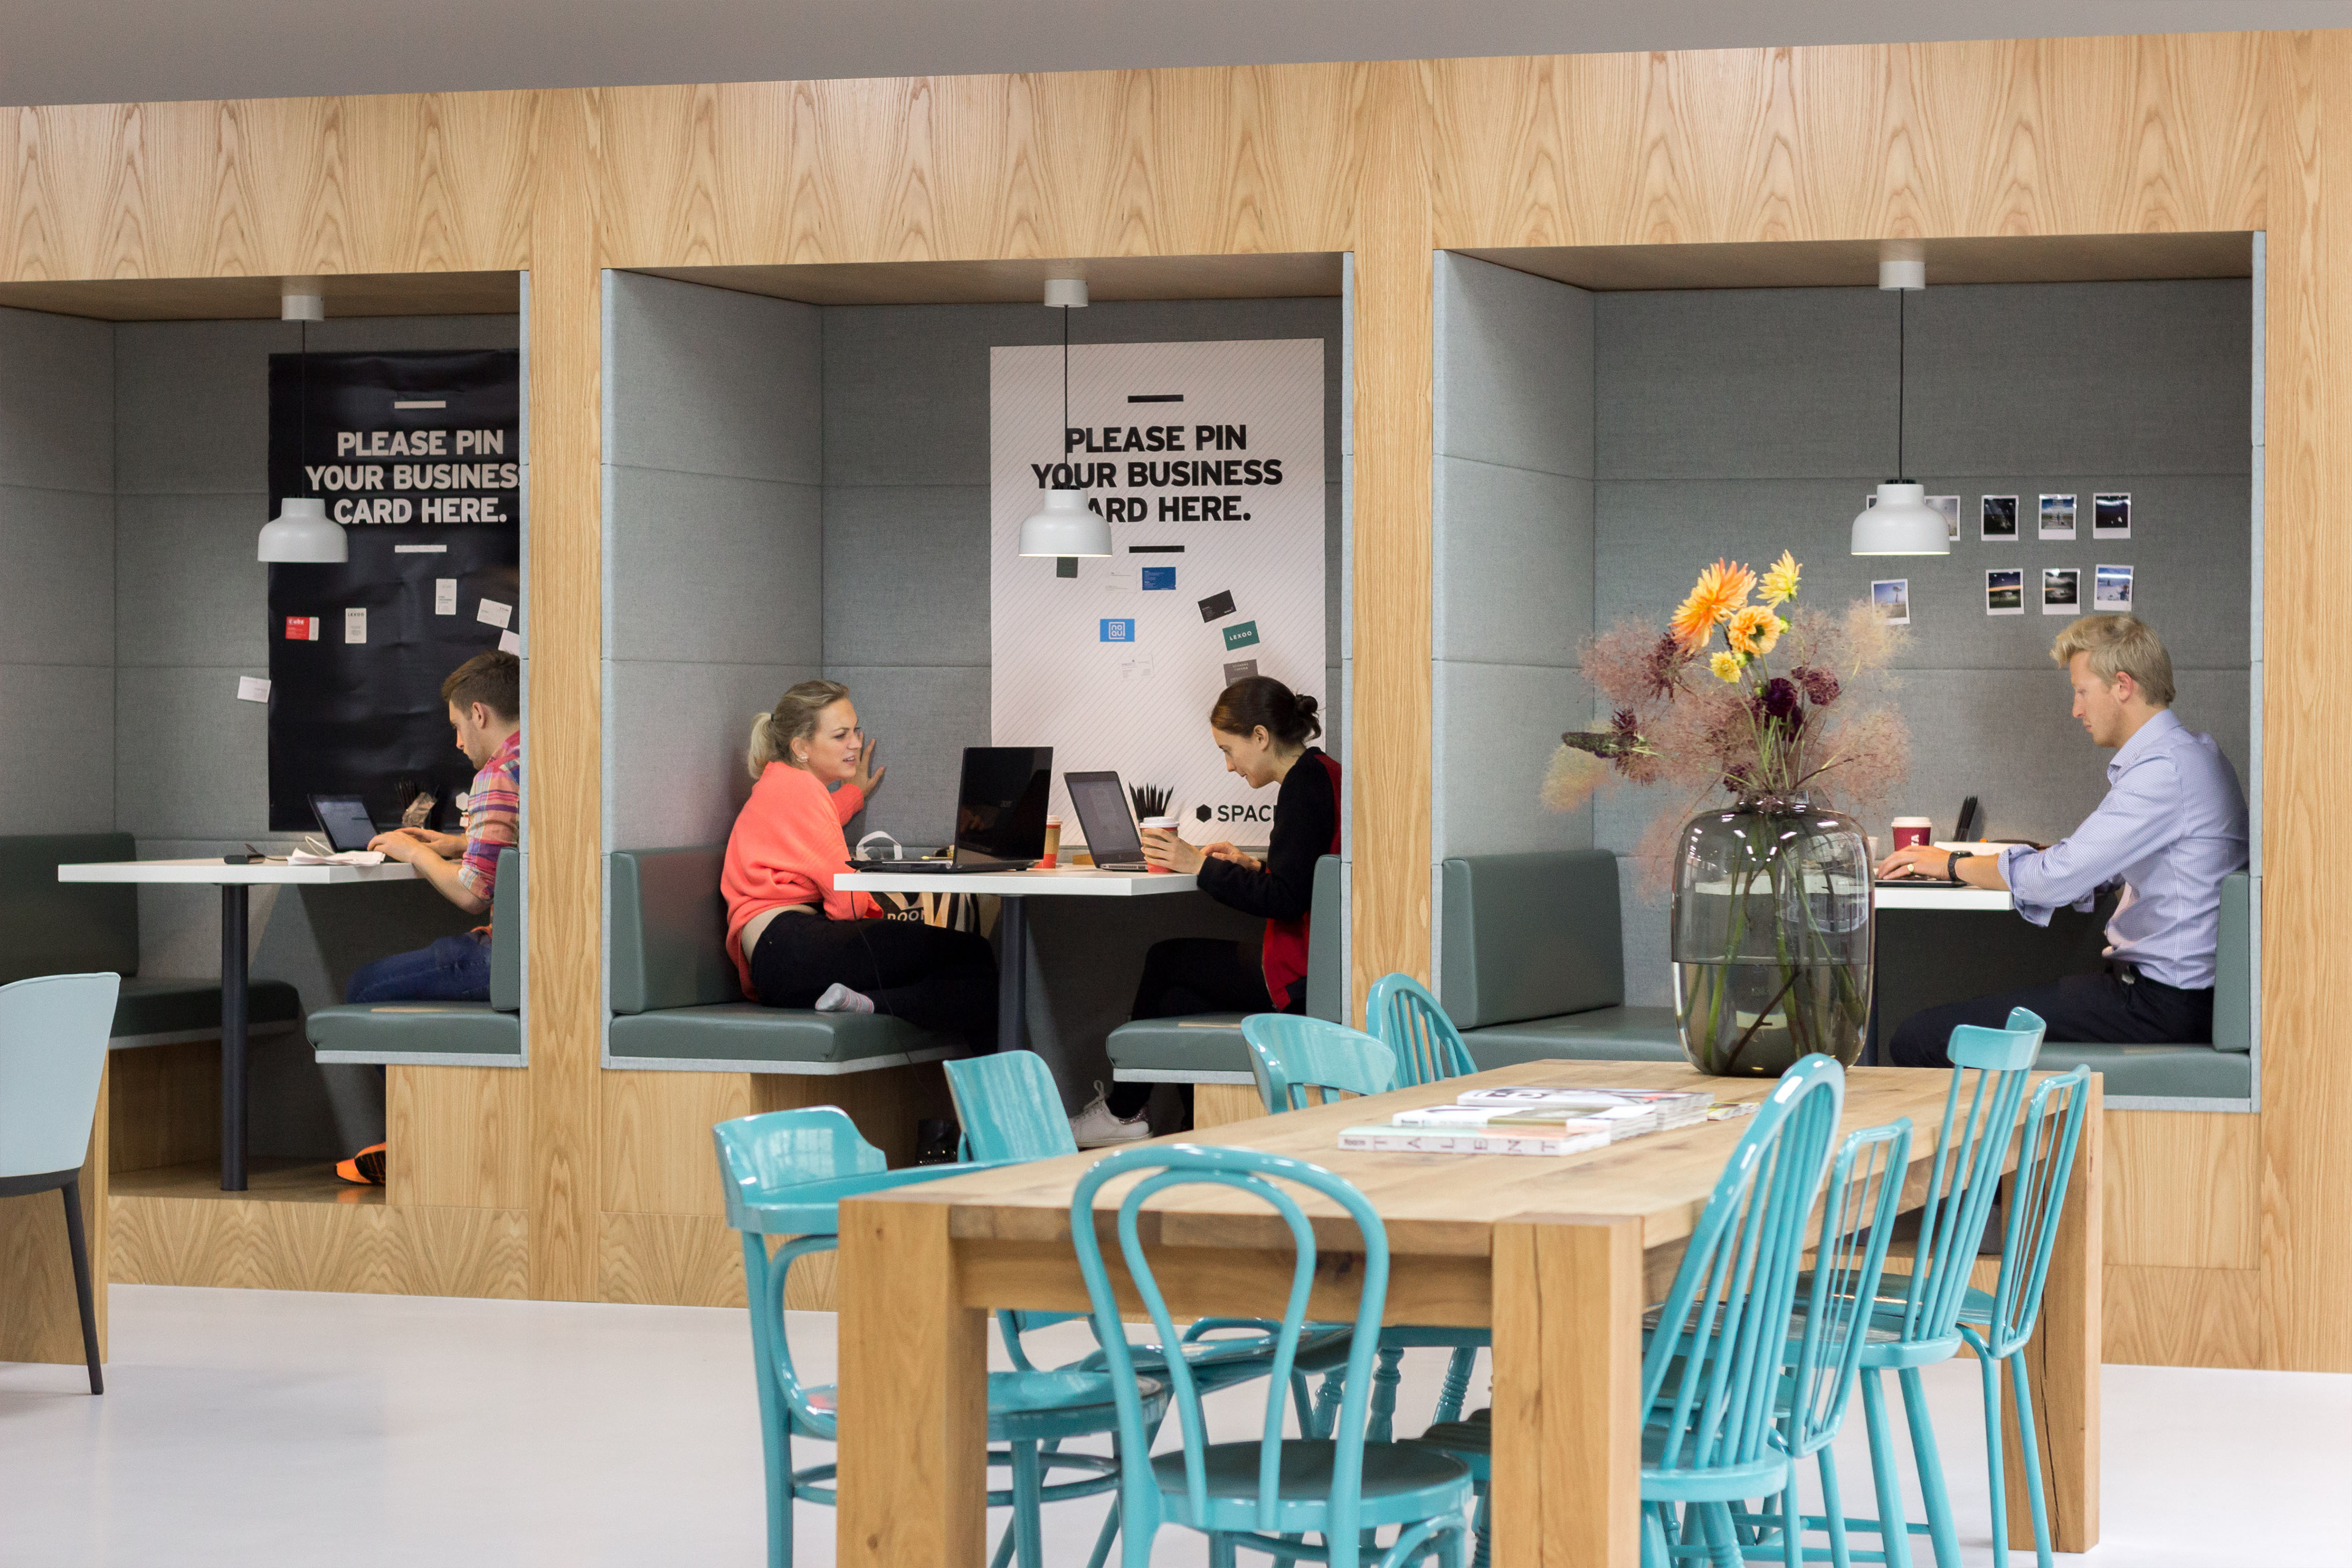 Spaces Lands In Silicon Valley Spaces